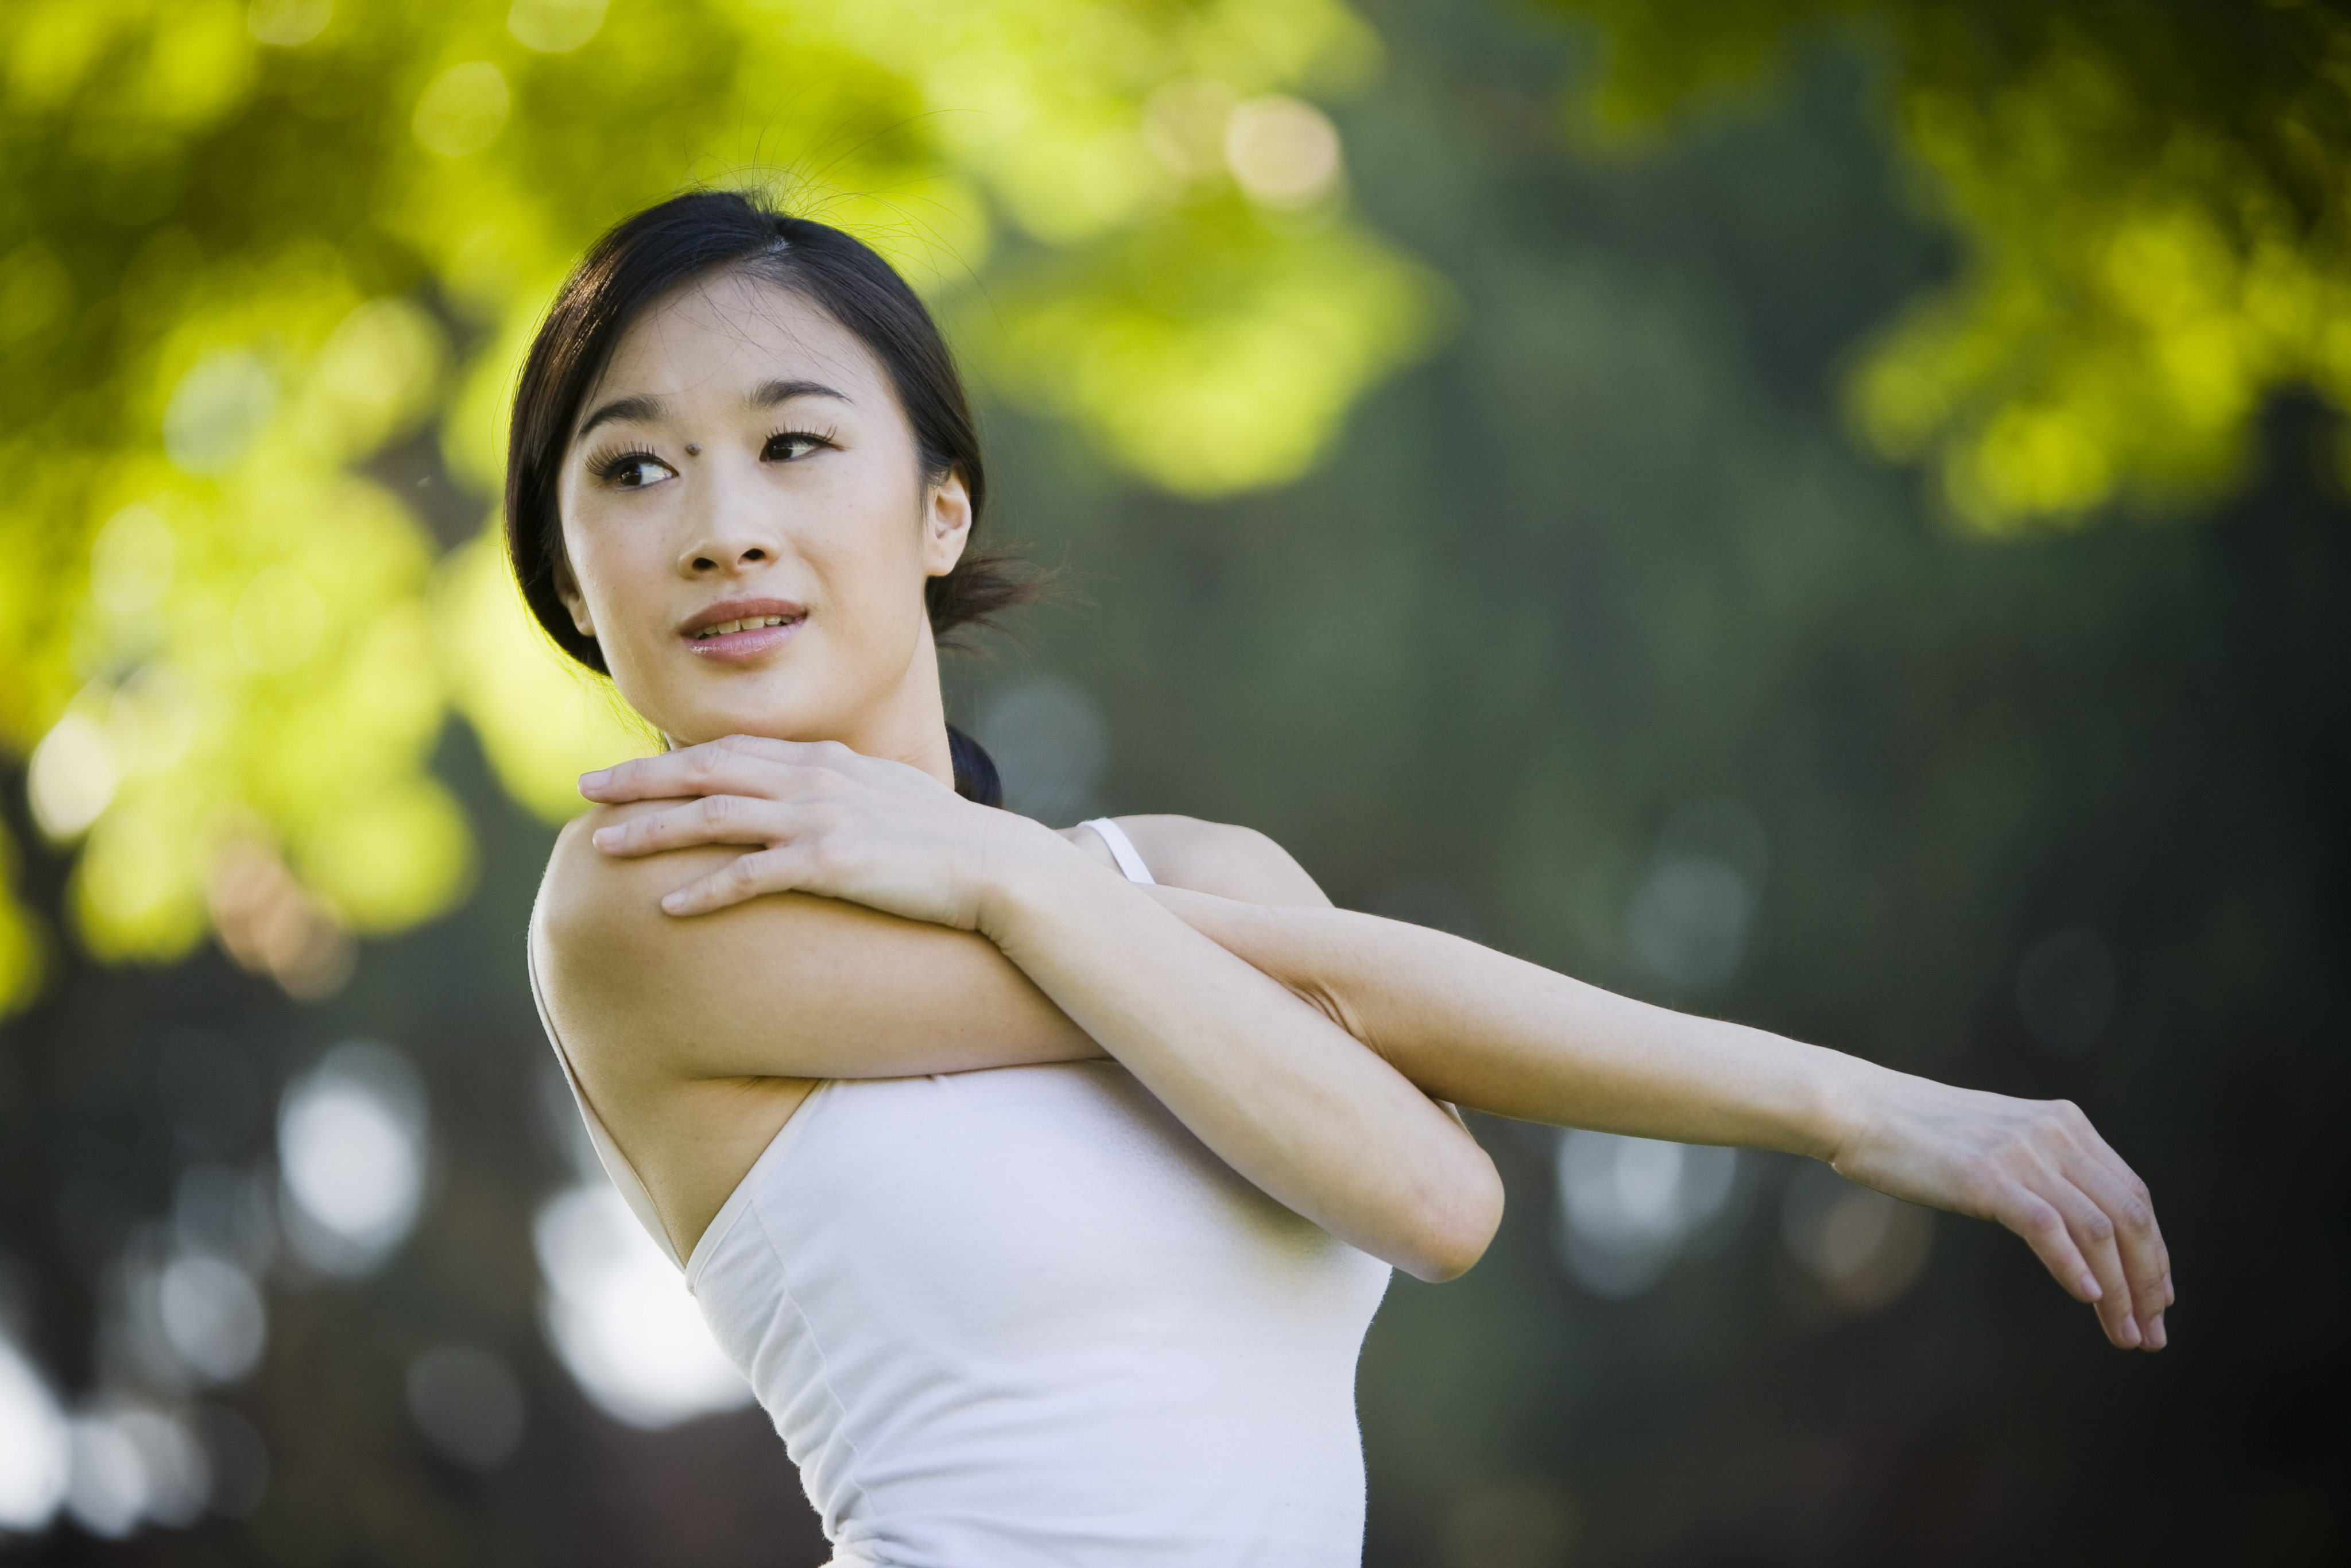 Asian girl stretching for exercise - Horizontal Closeup